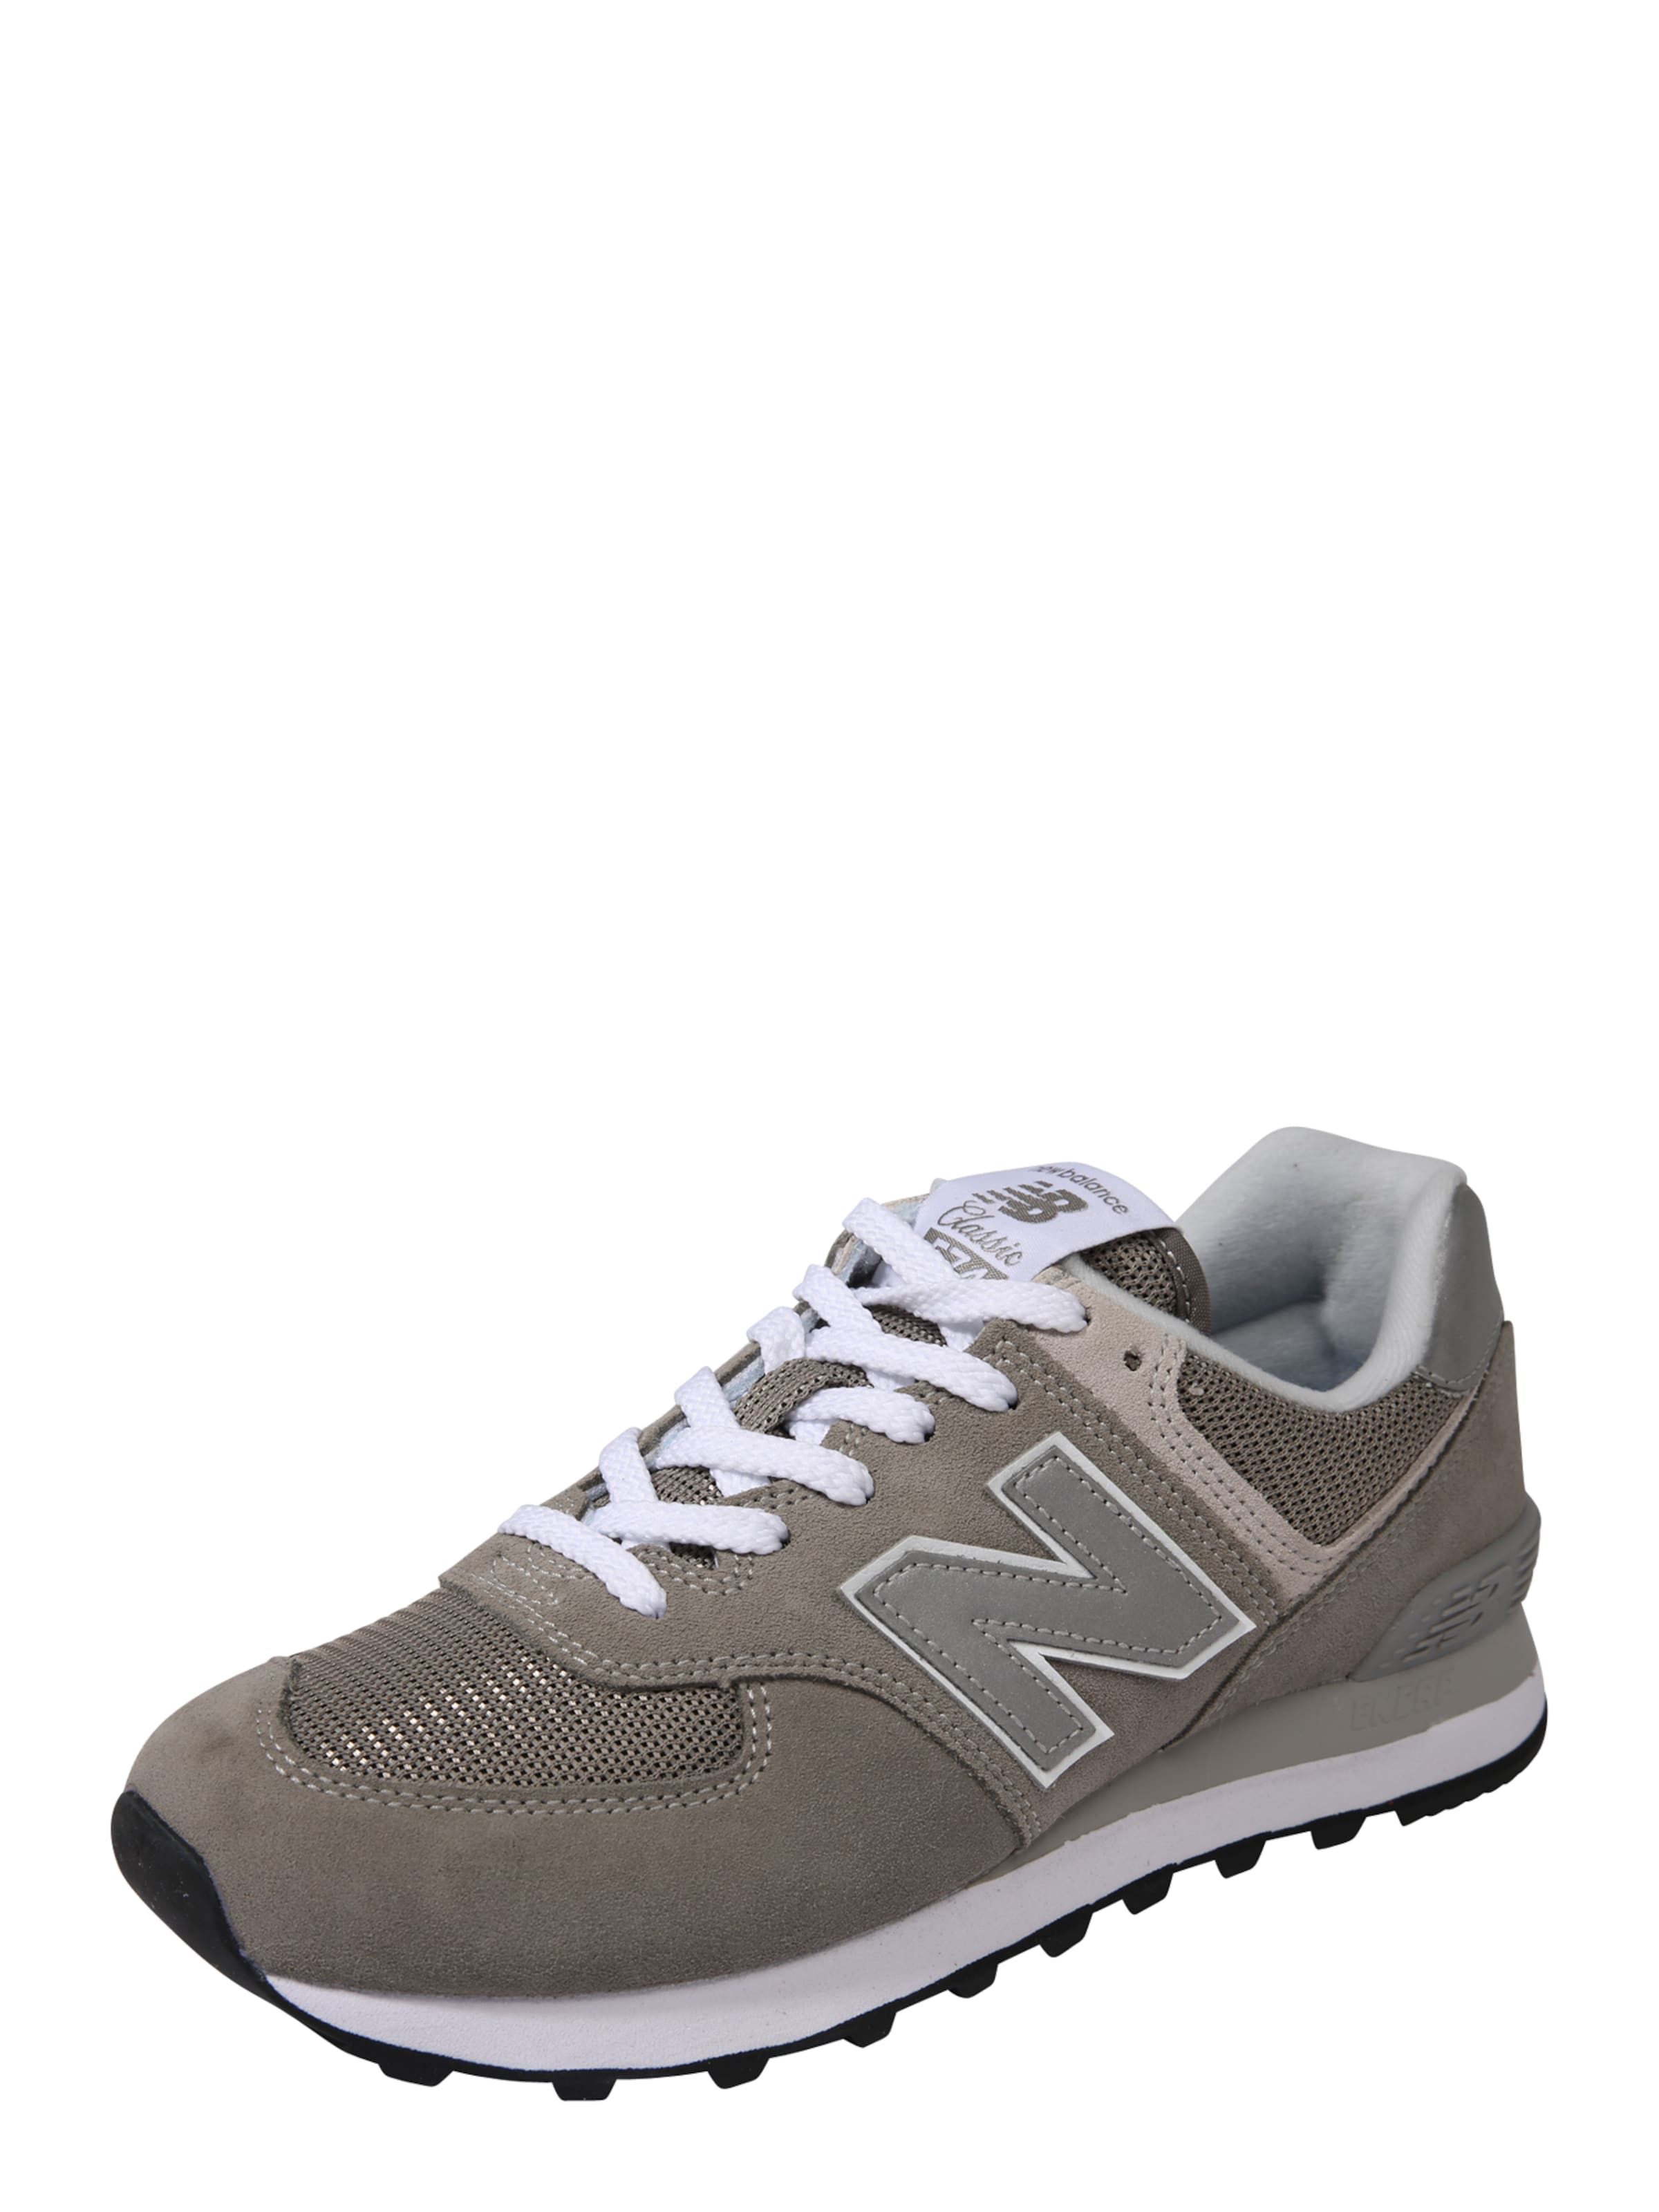 New Sneaker 'ml574' Balance In Grau 8n0Nwm